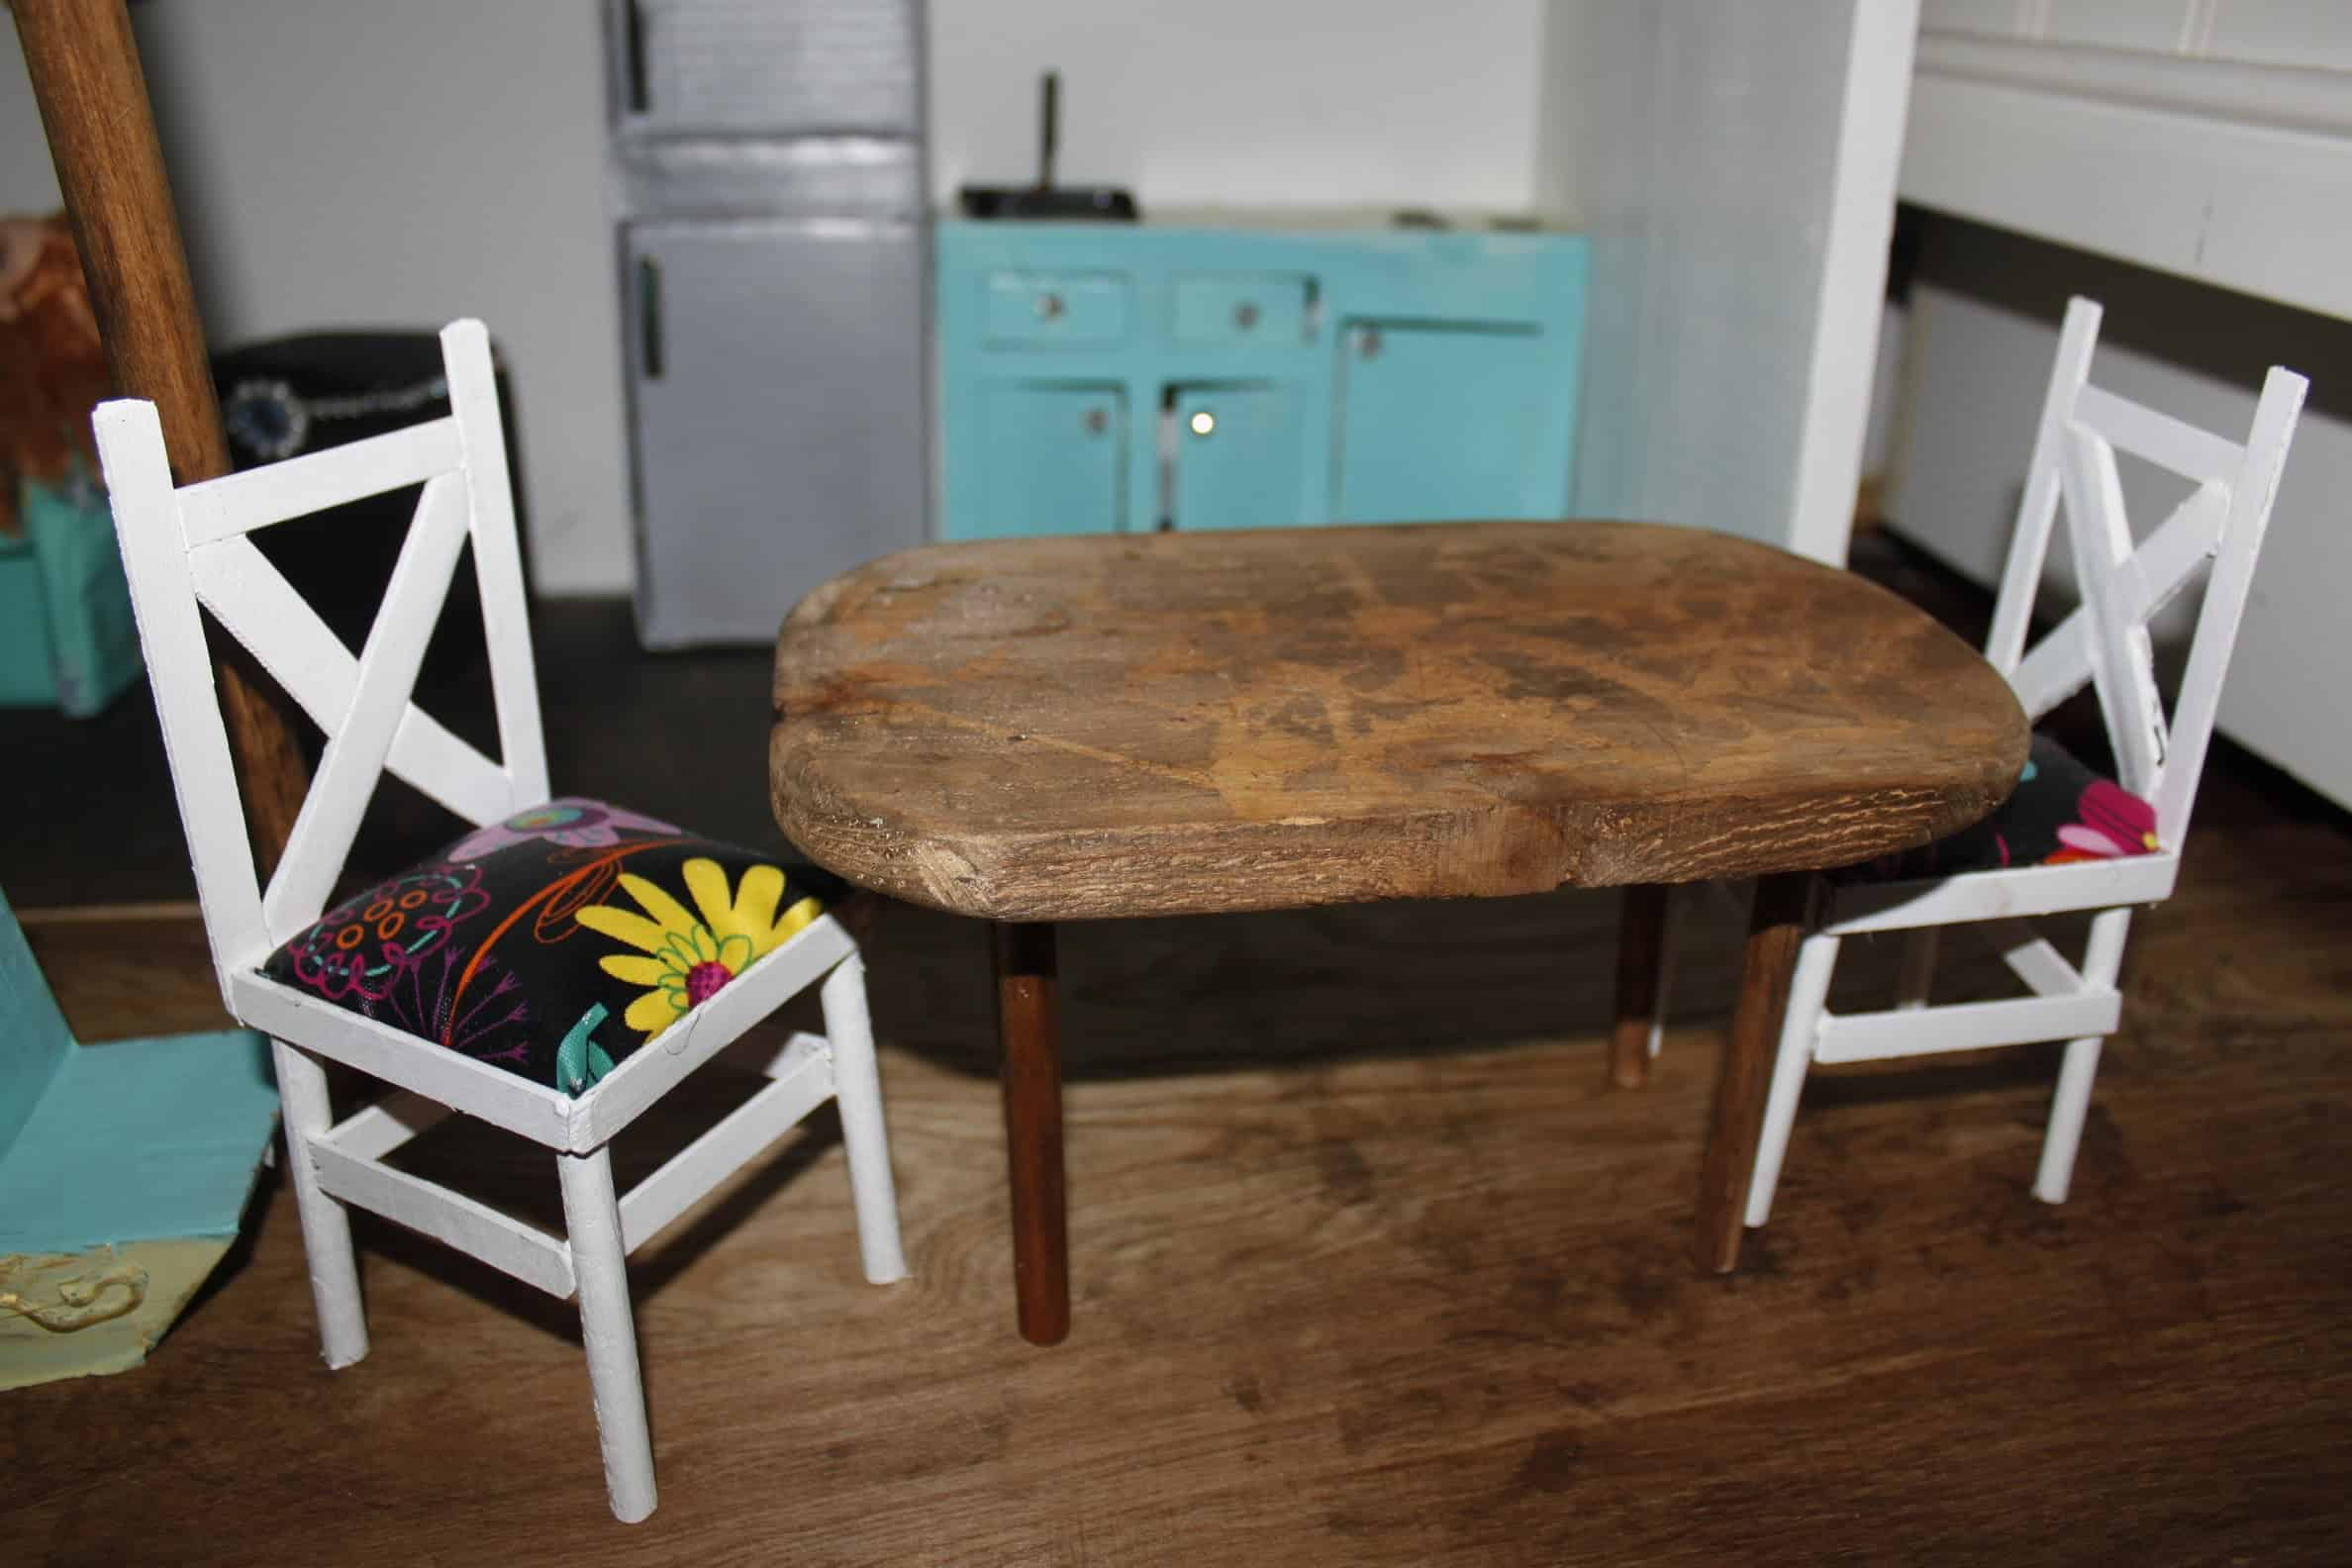 Kitchen chairs with cushions